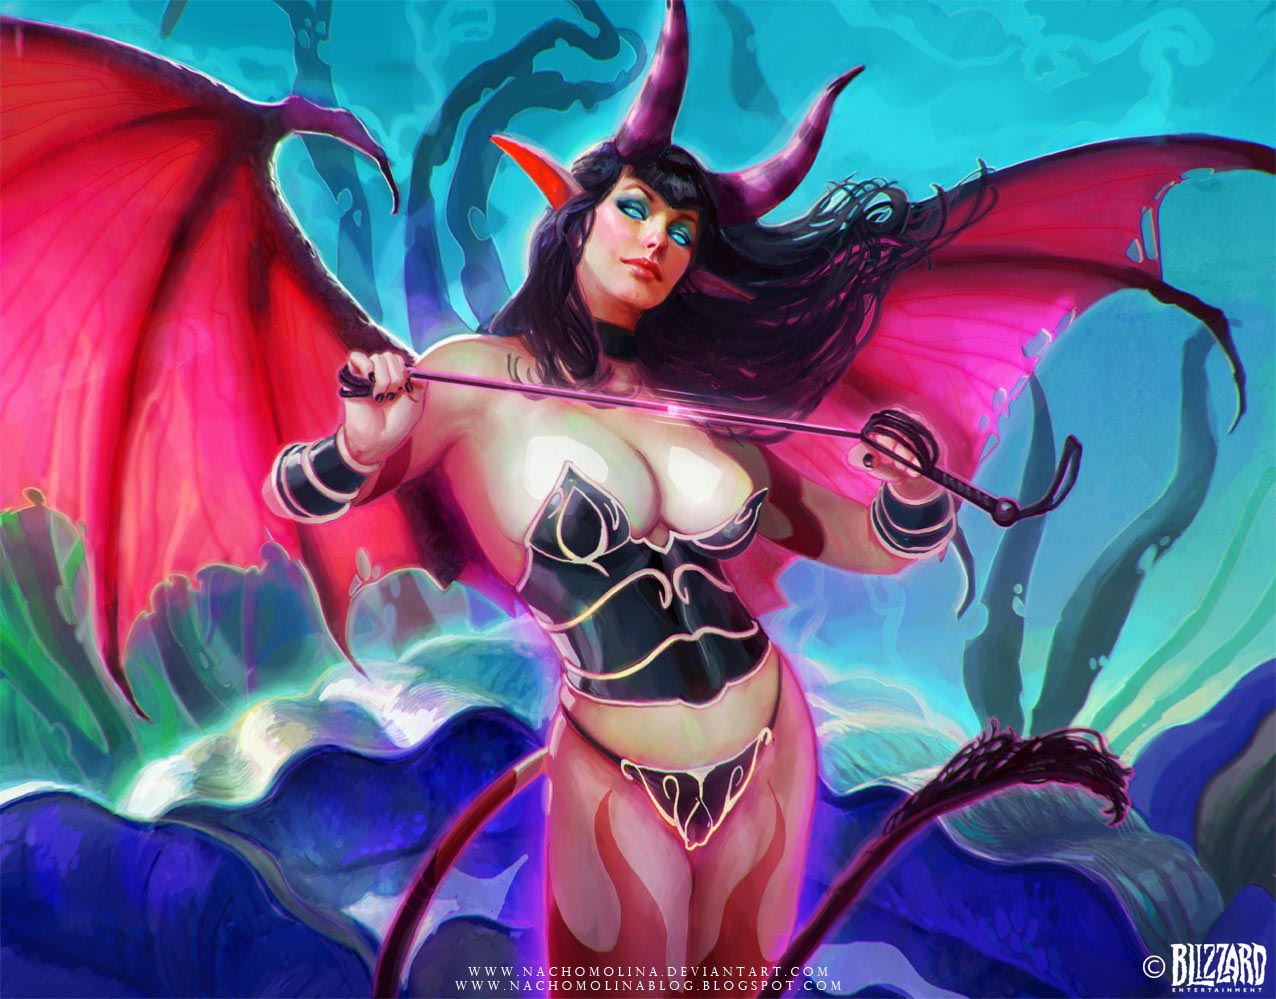 World of warcraft demon porn pic xxx tube